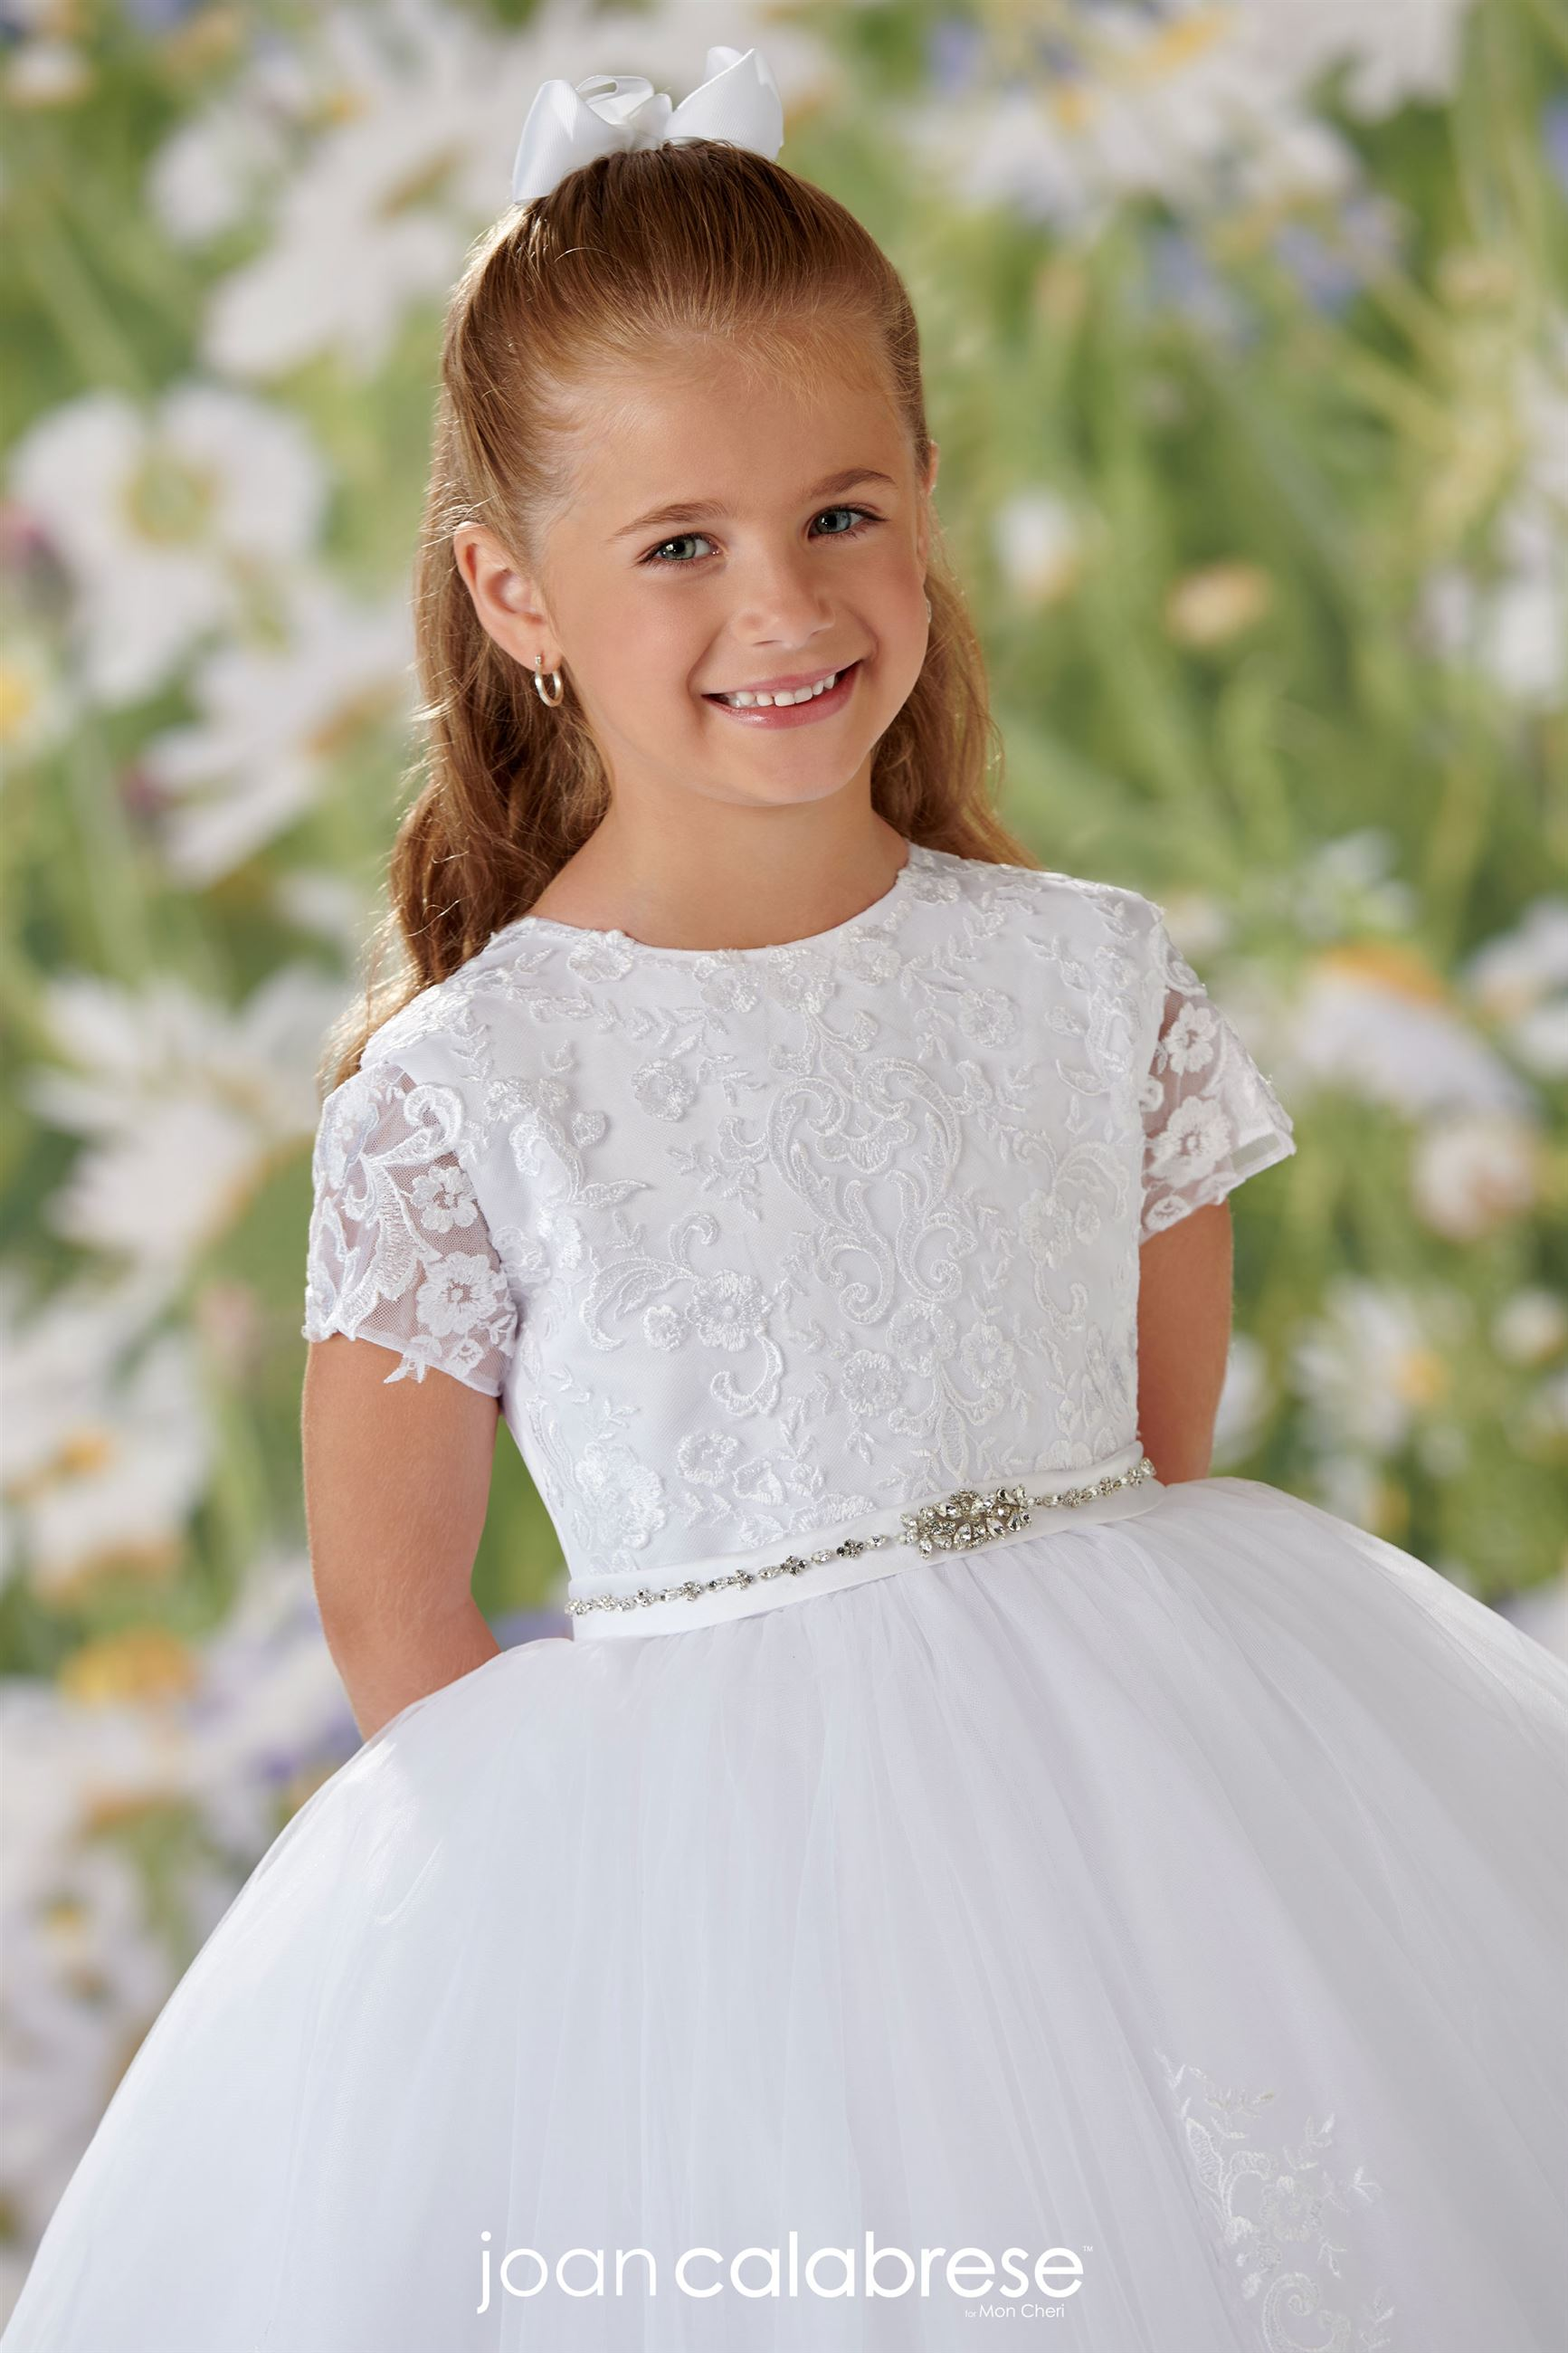 Joan Calabrese Flower Girl Image